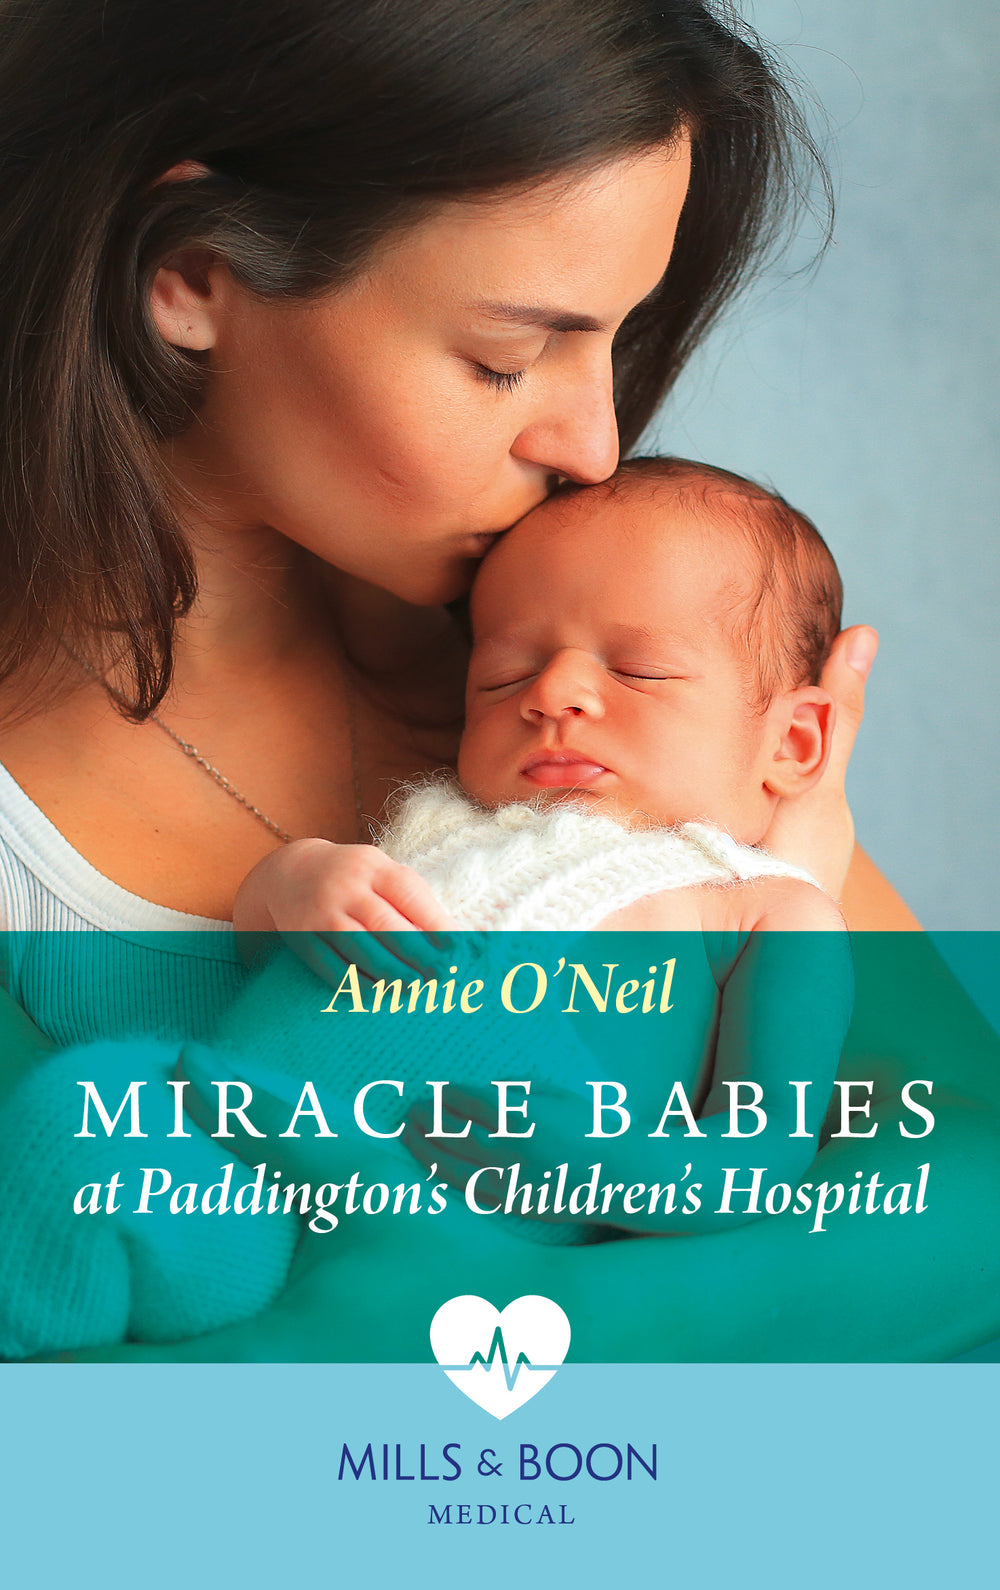 Miracle Babies at Paddington's Children's Hospital